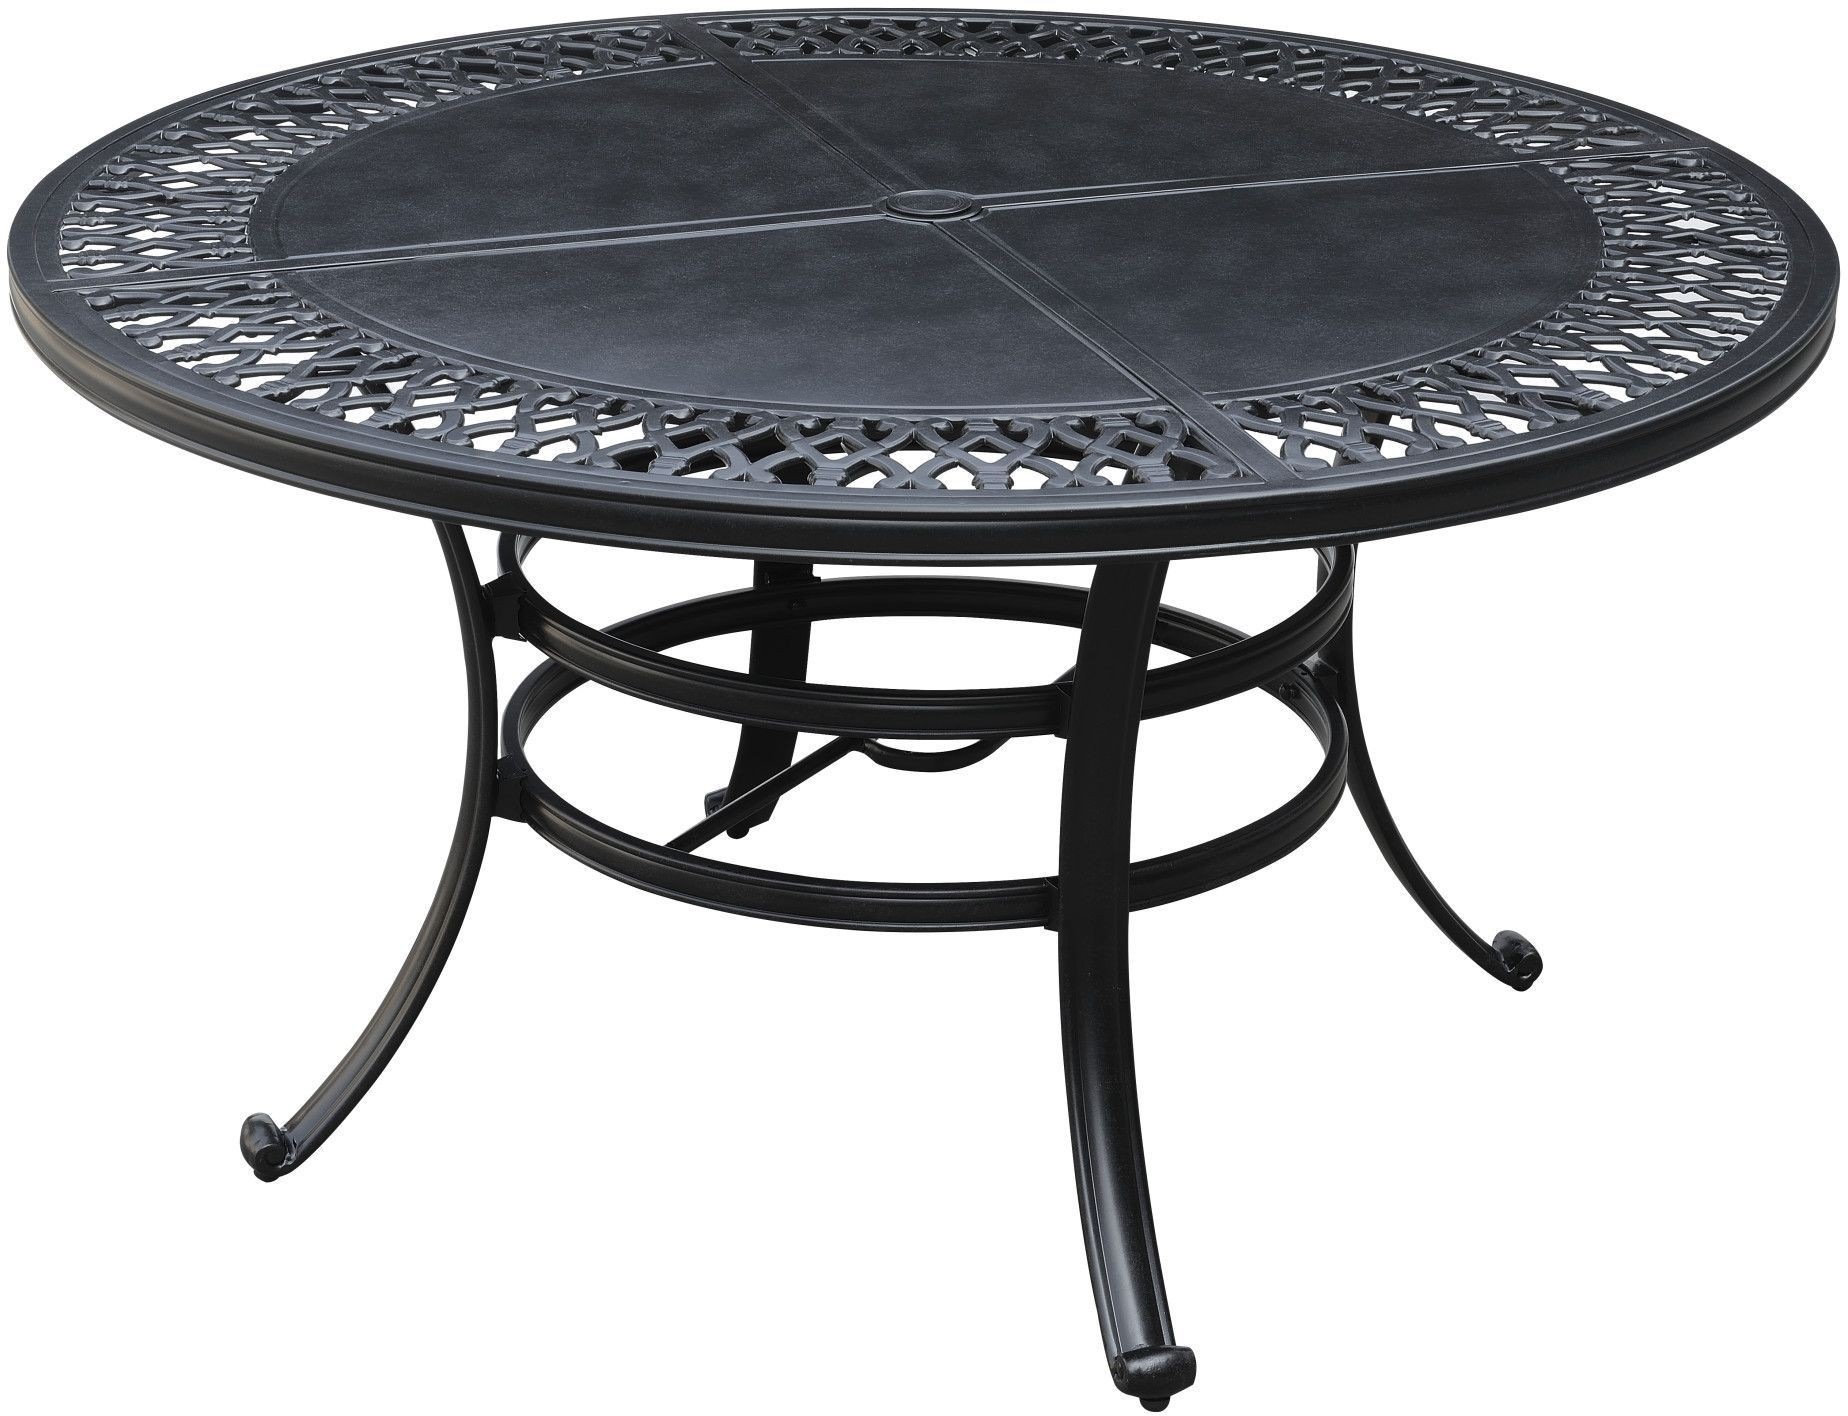 versailles onyx 54 round outdoor umbrella dining table from emerald home coleman furniture. Black Bedroom Furniture Sets. Home Design Ideas